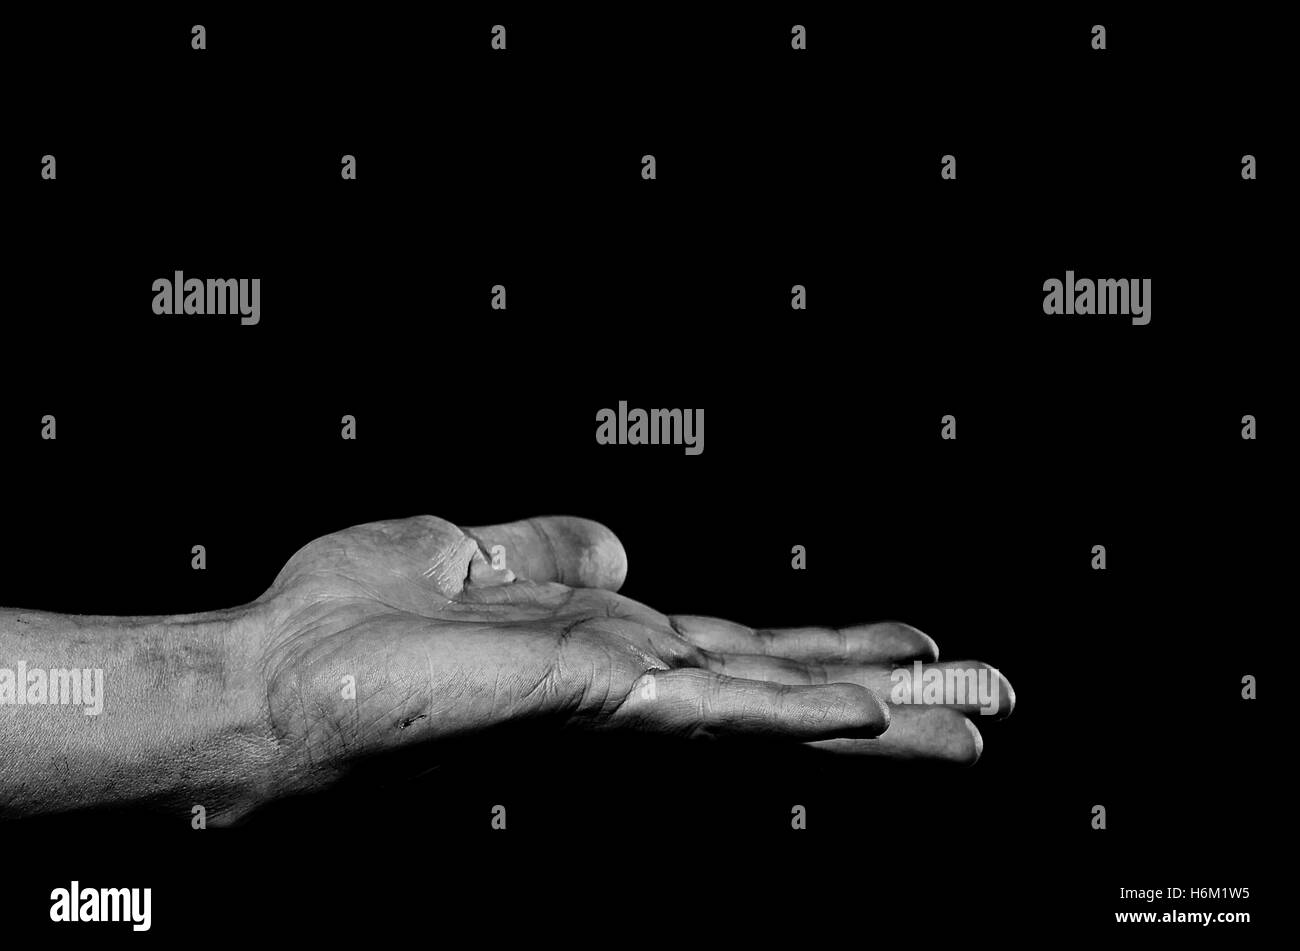 Disclosed palm up dirty man's hand on a dark background. - Stock Image